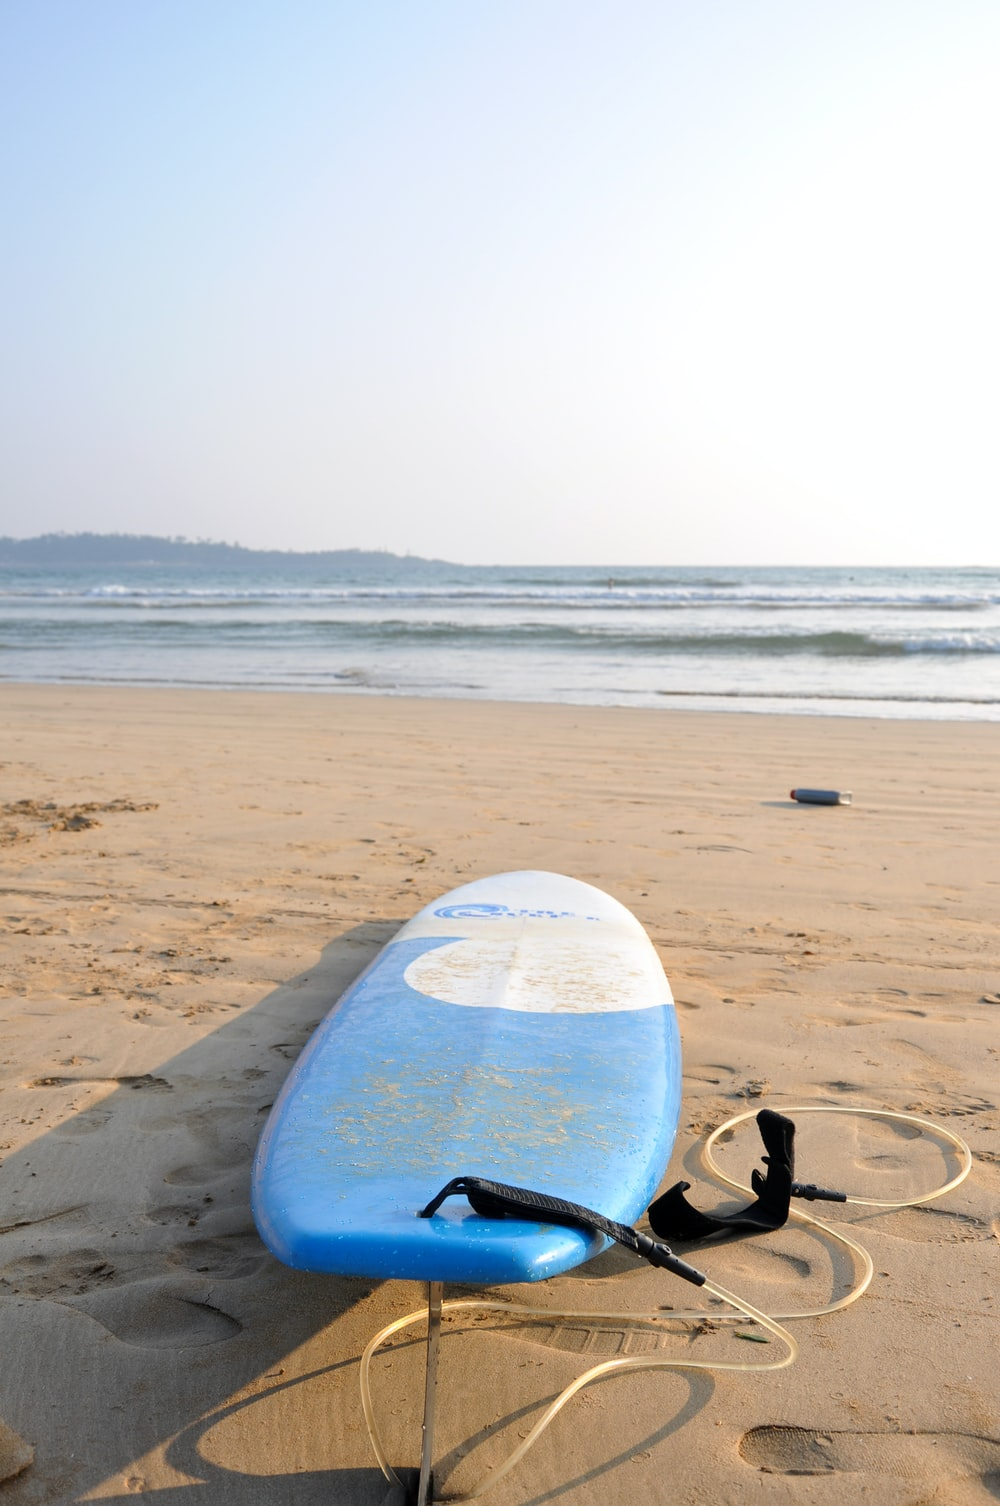 blue and white surfboard on seashore